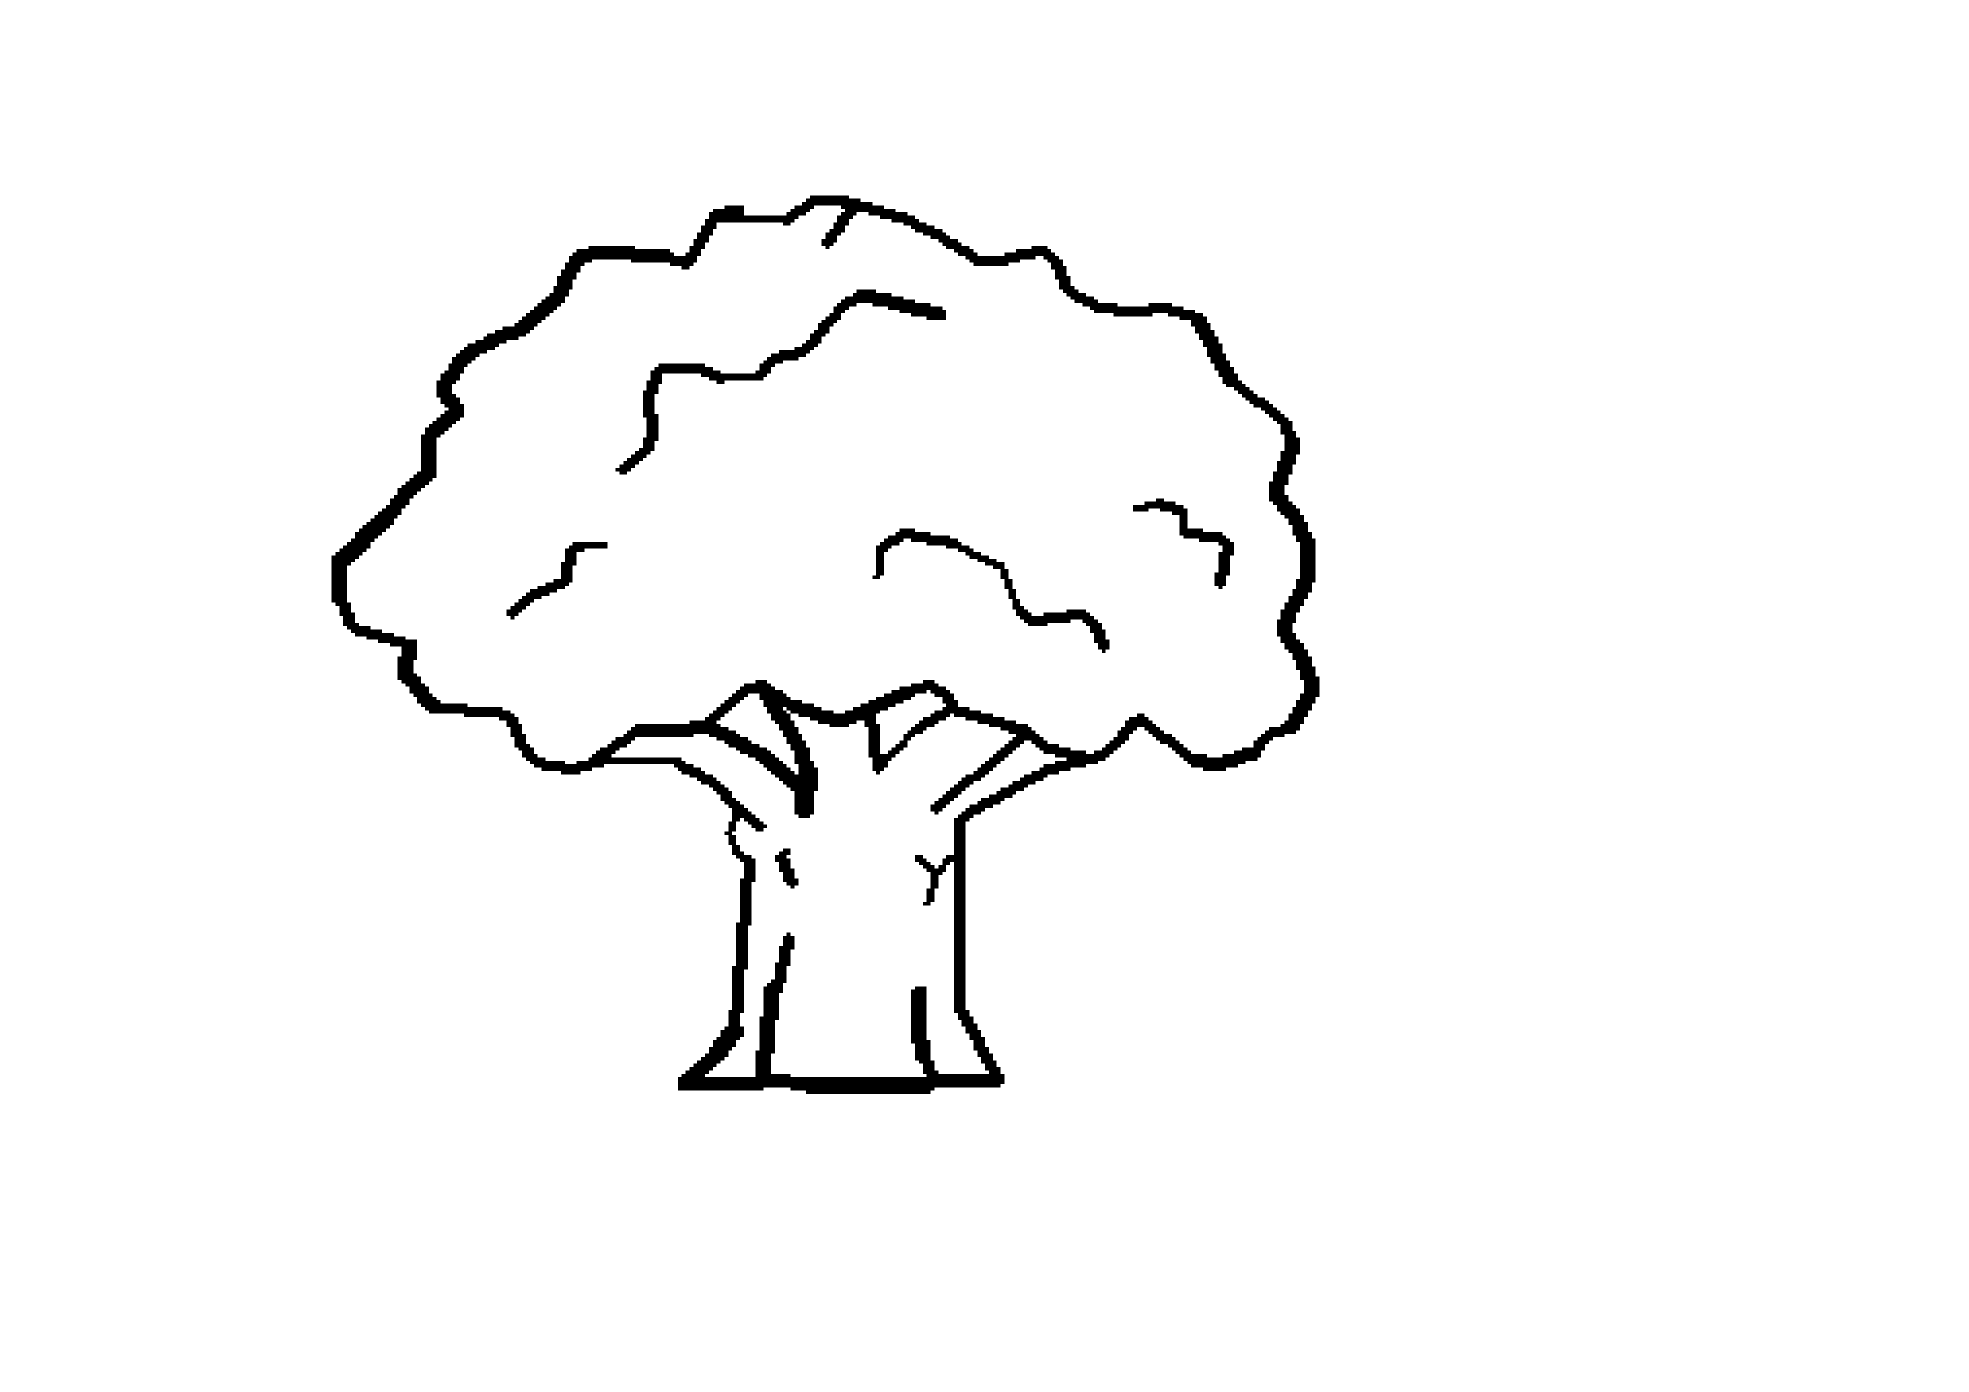 Drawing Lines Using Svg : Line drawing of a tree clipart best